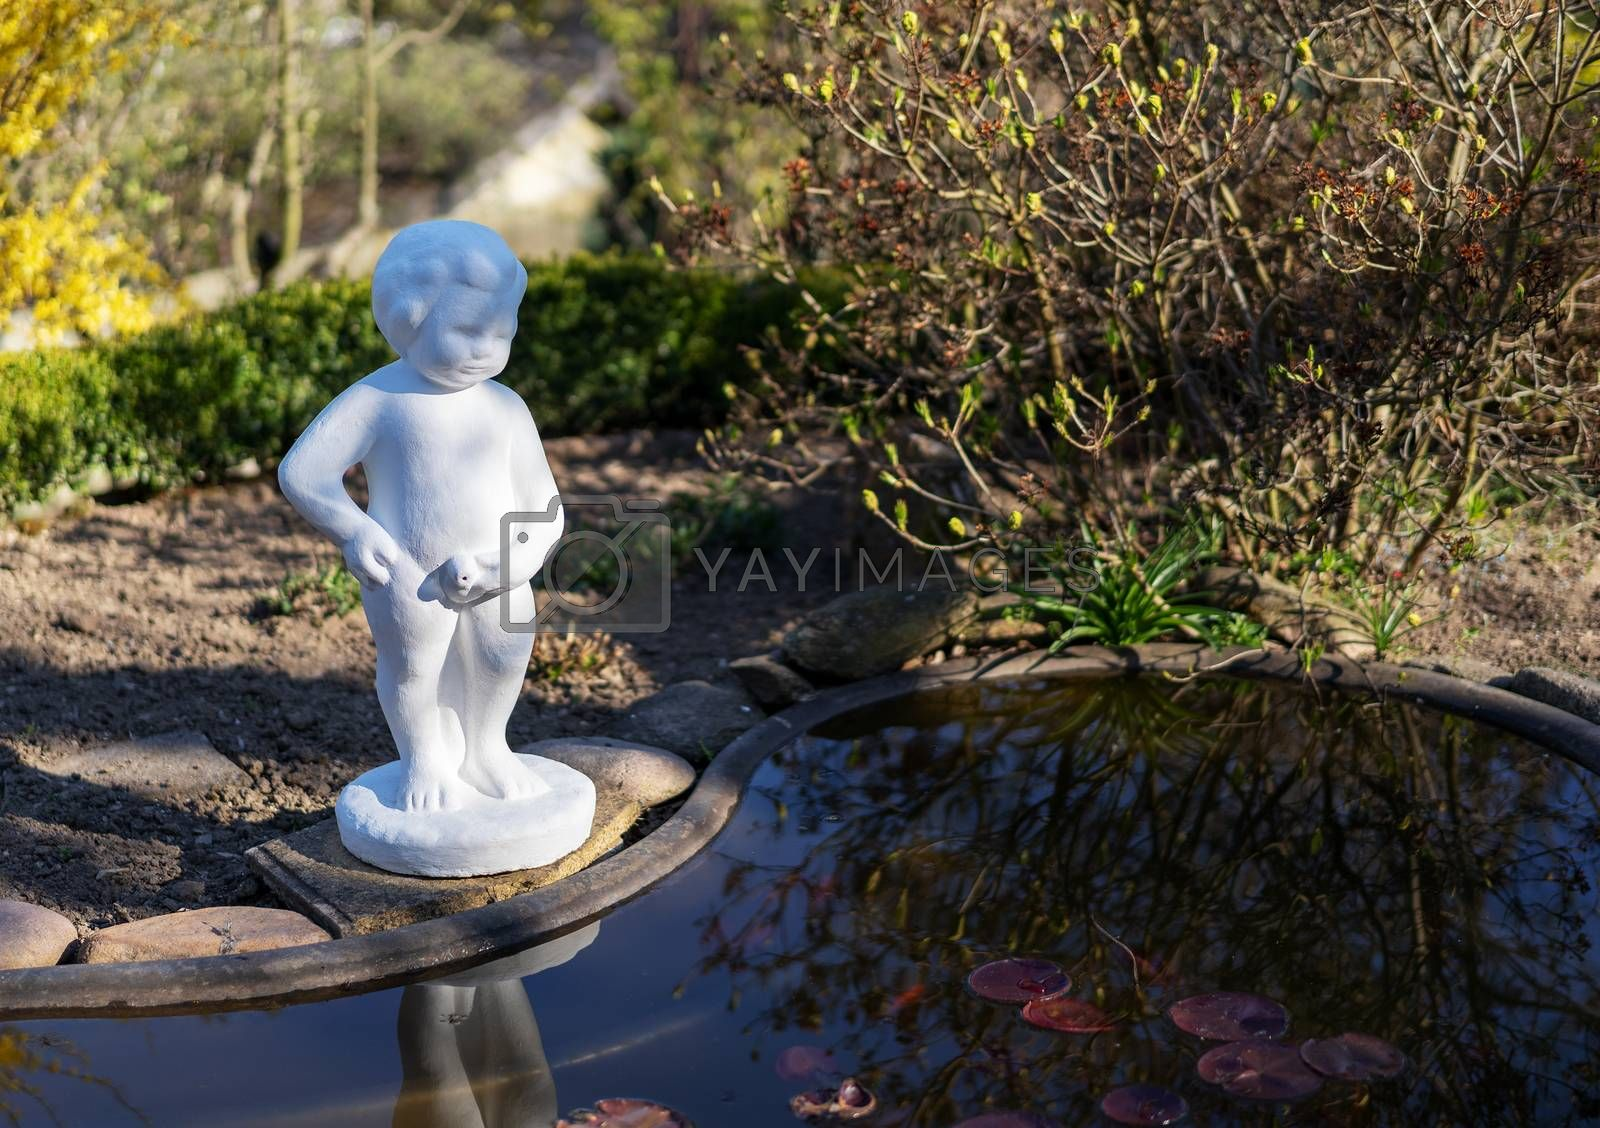 A sculpture in front of a garden pond. by Daniel Albach